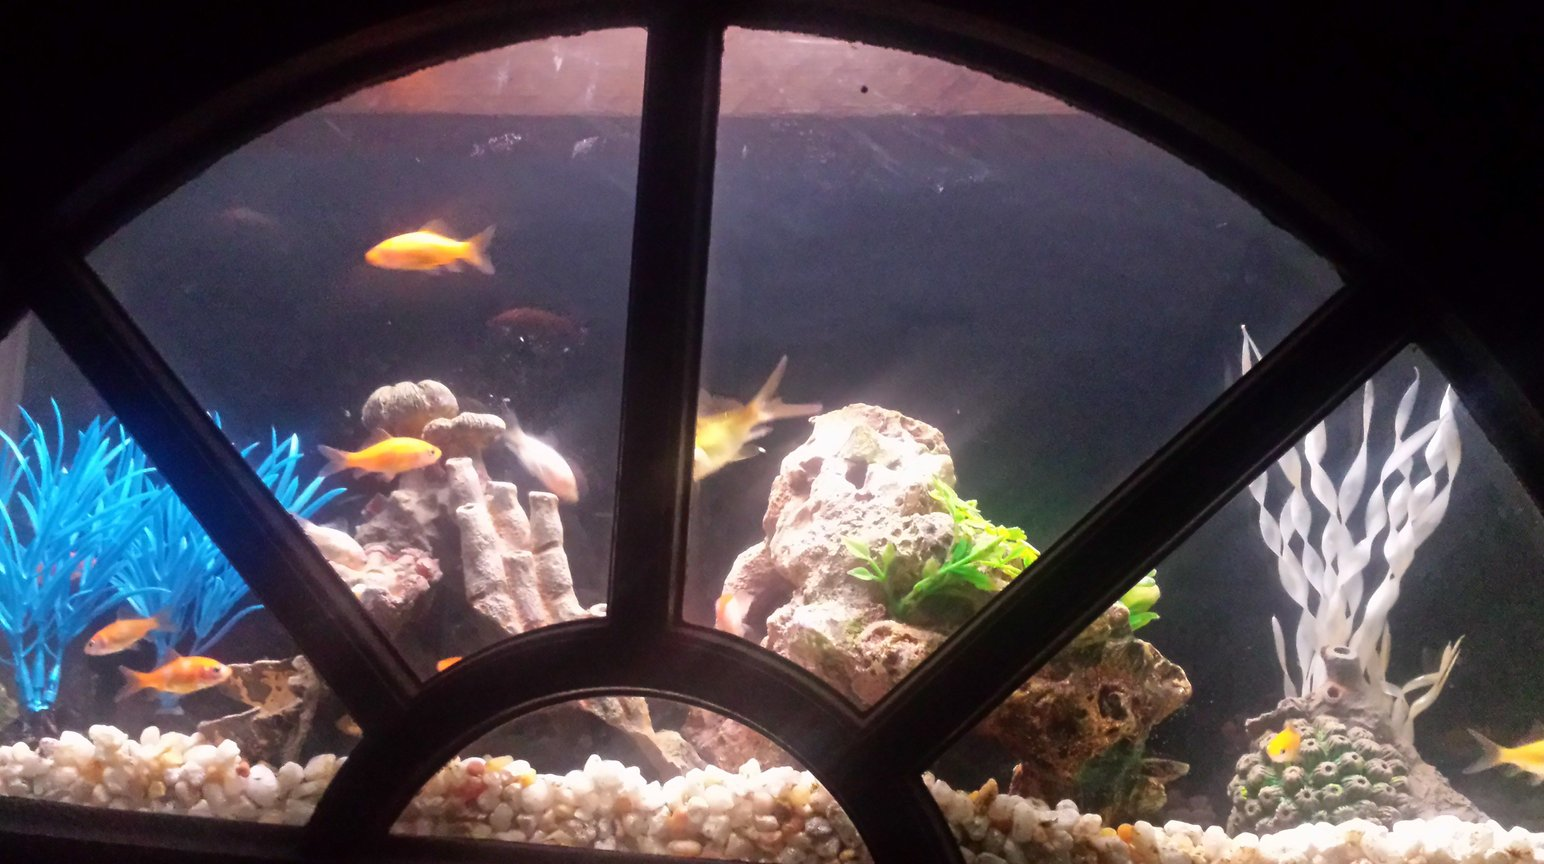 4 gallons freshwater fish tank (mostly fish and non-living decorations) - current